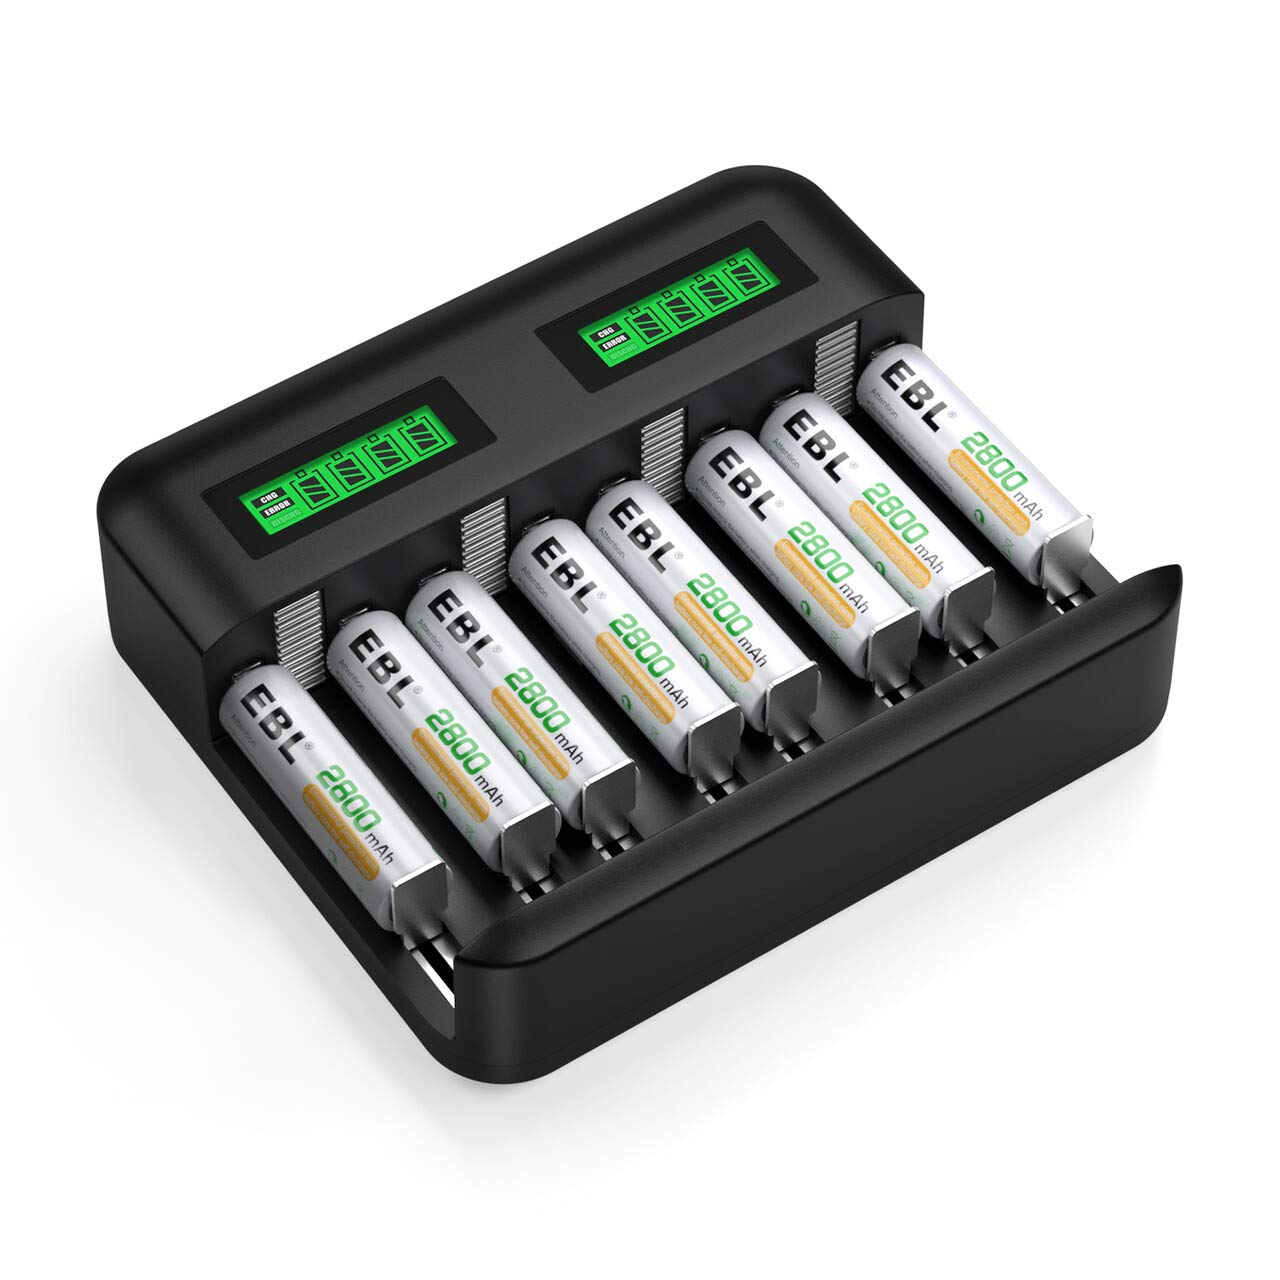 EBL AA Rechargeable Batteries Ni-MH 2800mAh (8Pcs) and Individual Battery Charger with LCD Display for Rechargeable AA AAA C D Batteries